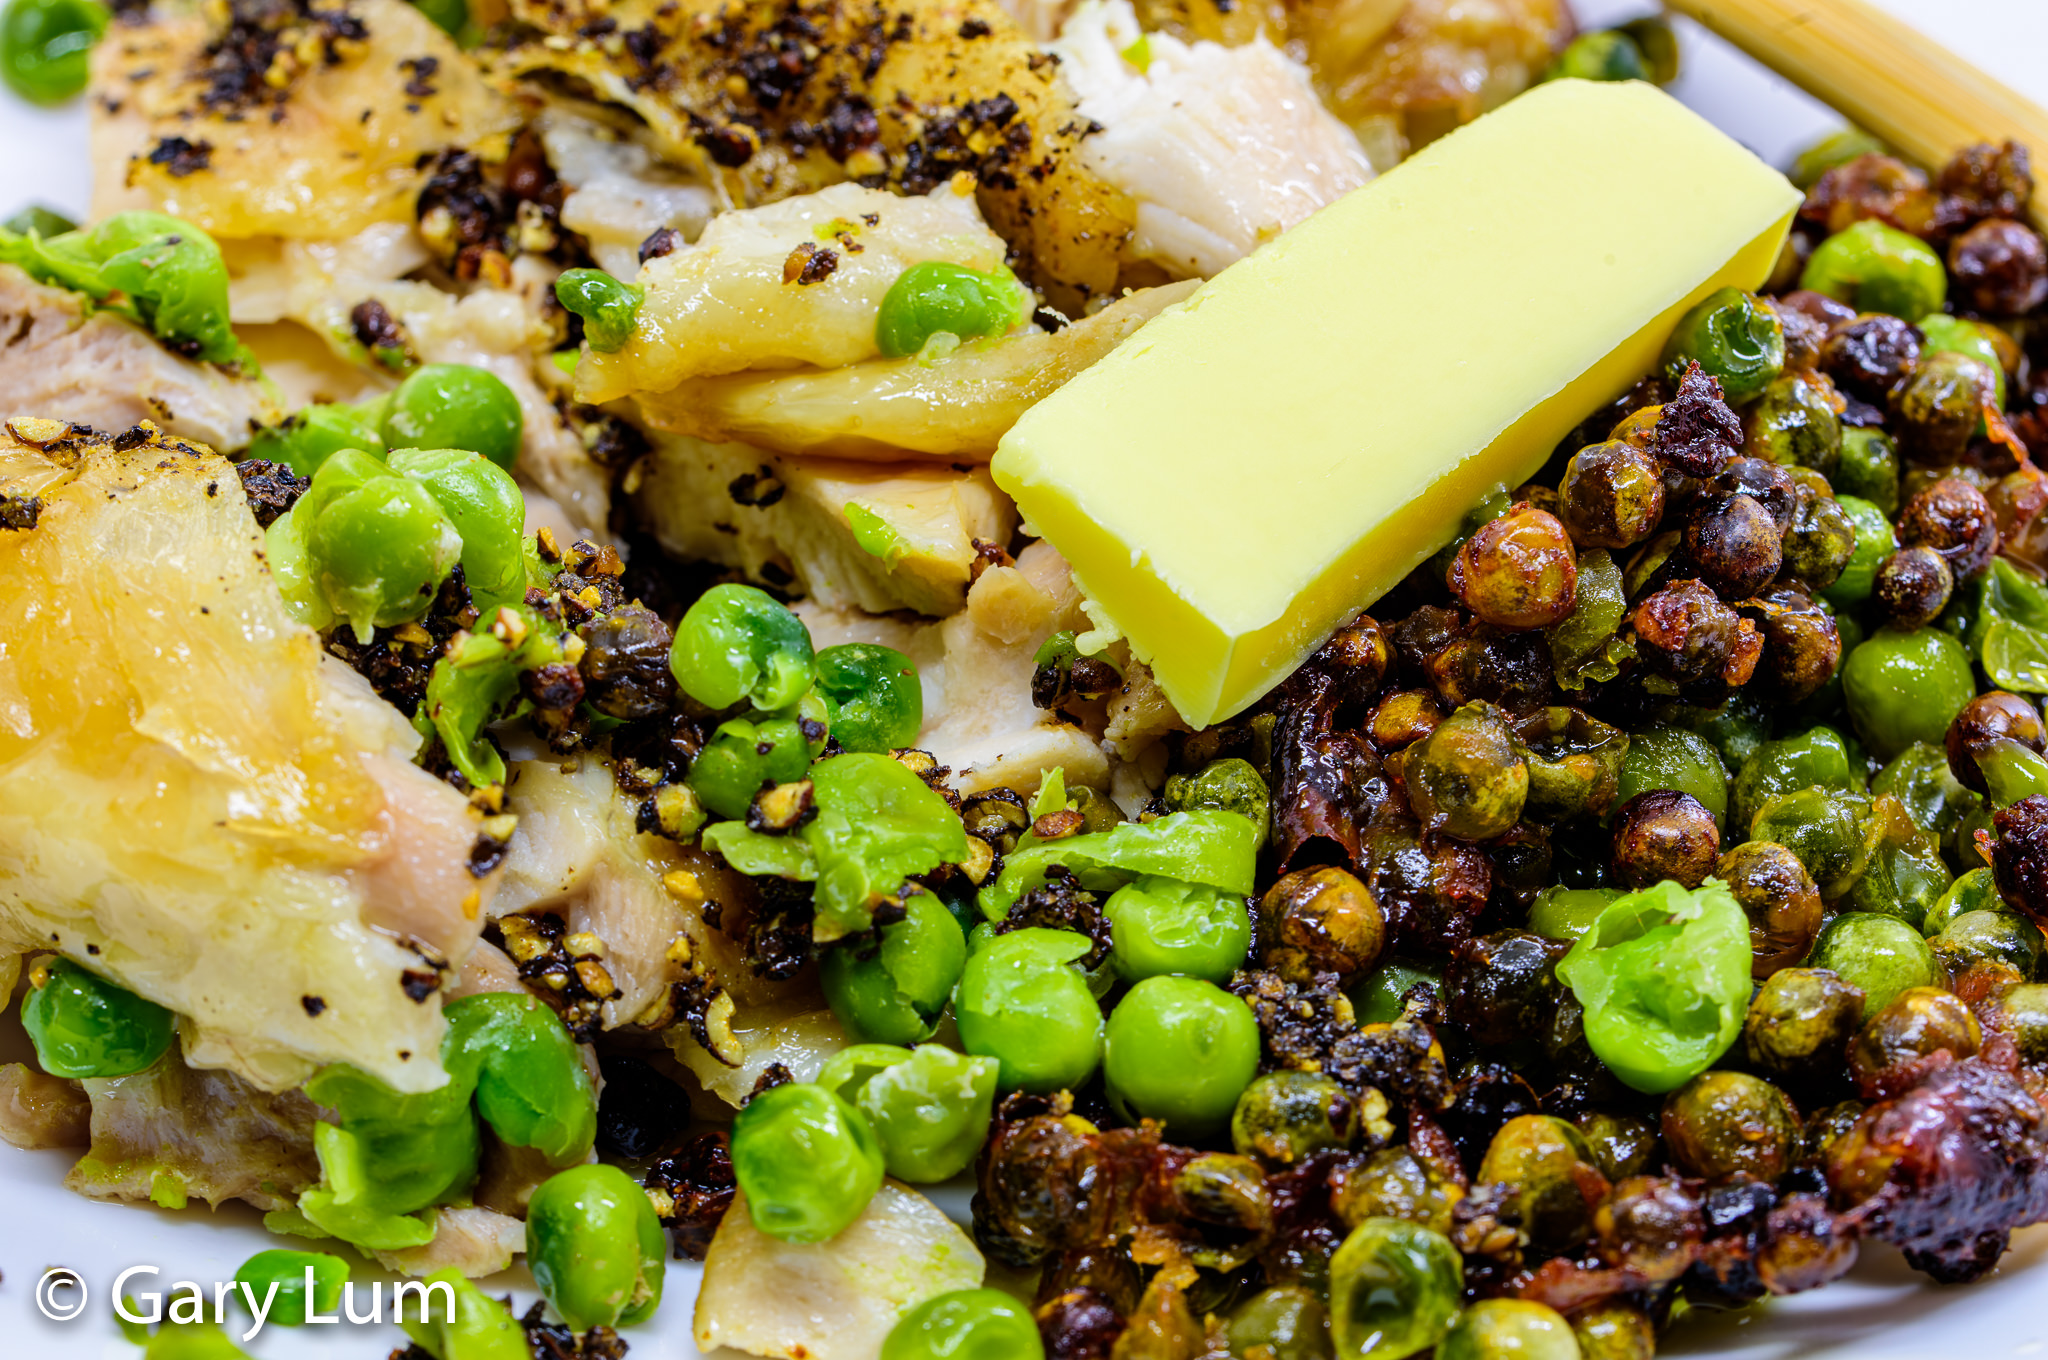 Close up. Oven-baked deboned chicken thigh and crispy green peas. Gary Lum.